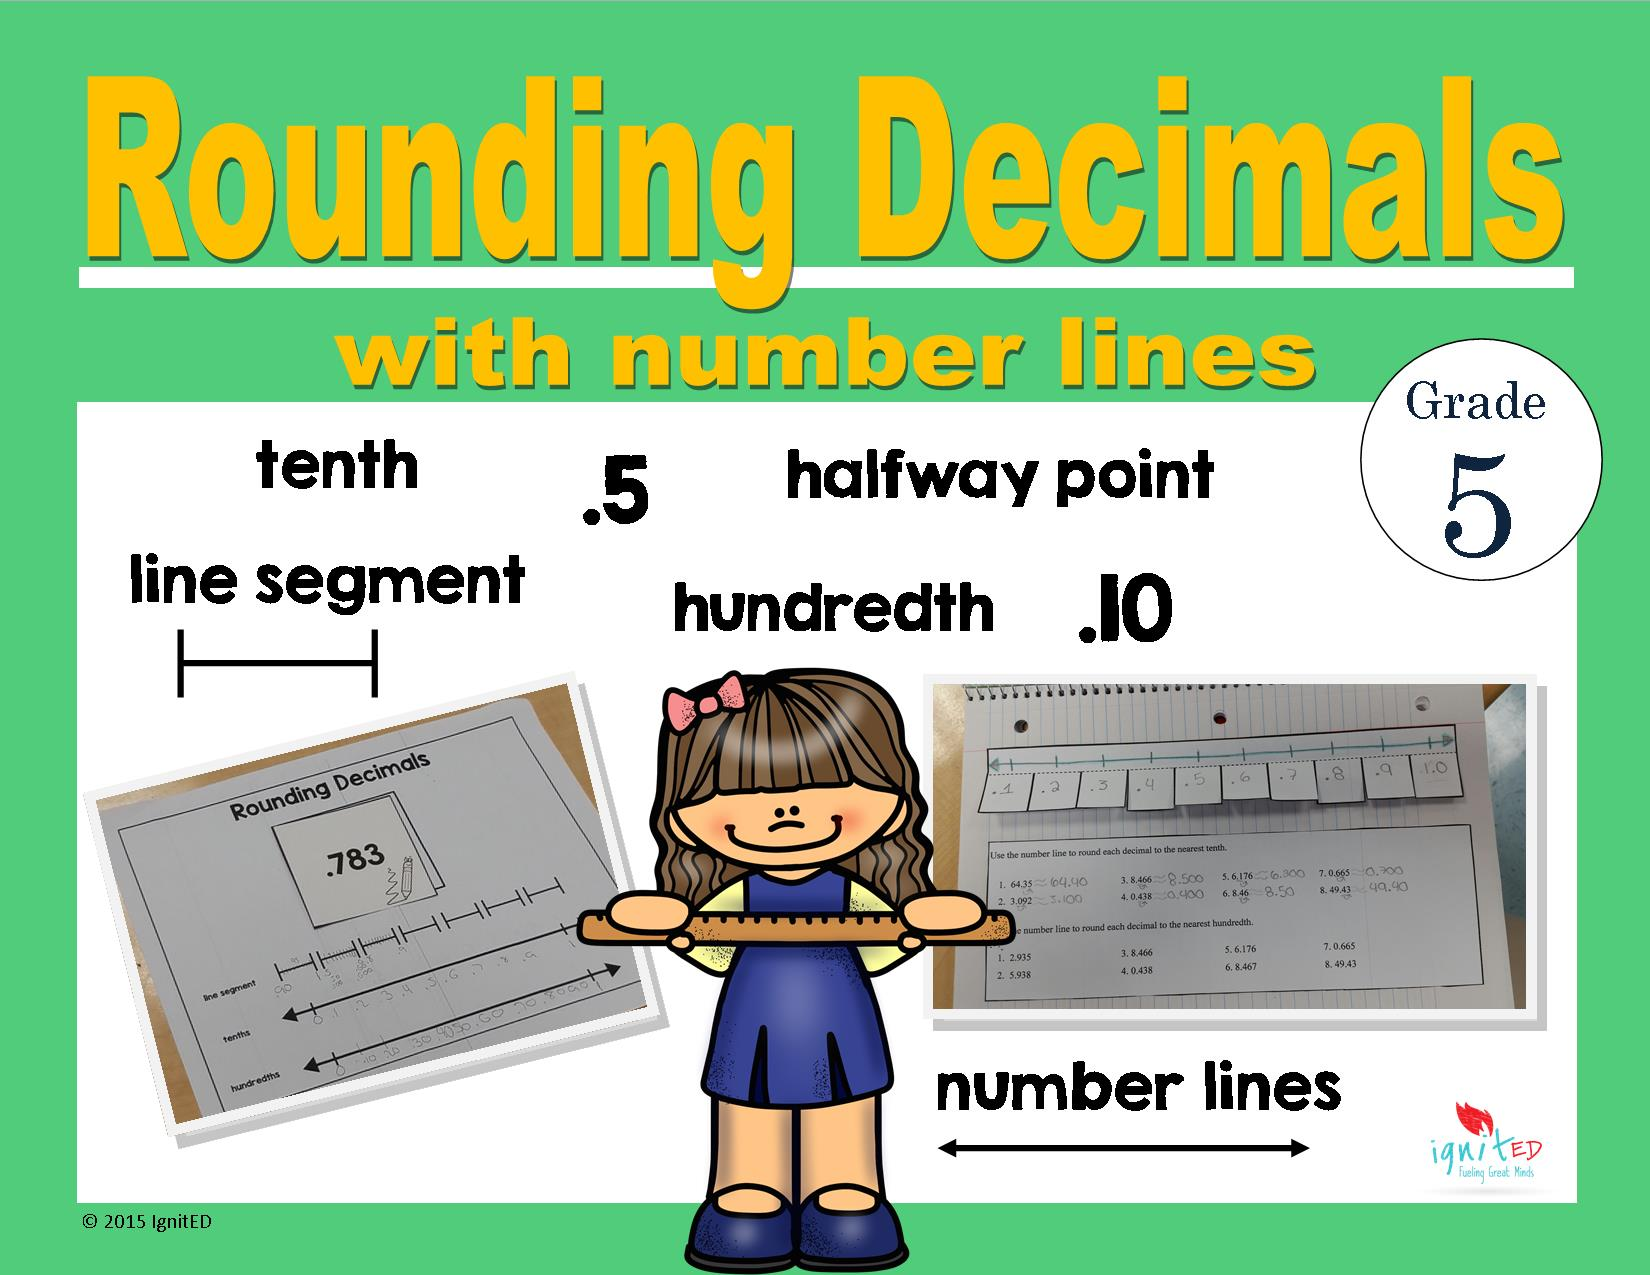 Rounding Decimals With Number Lines